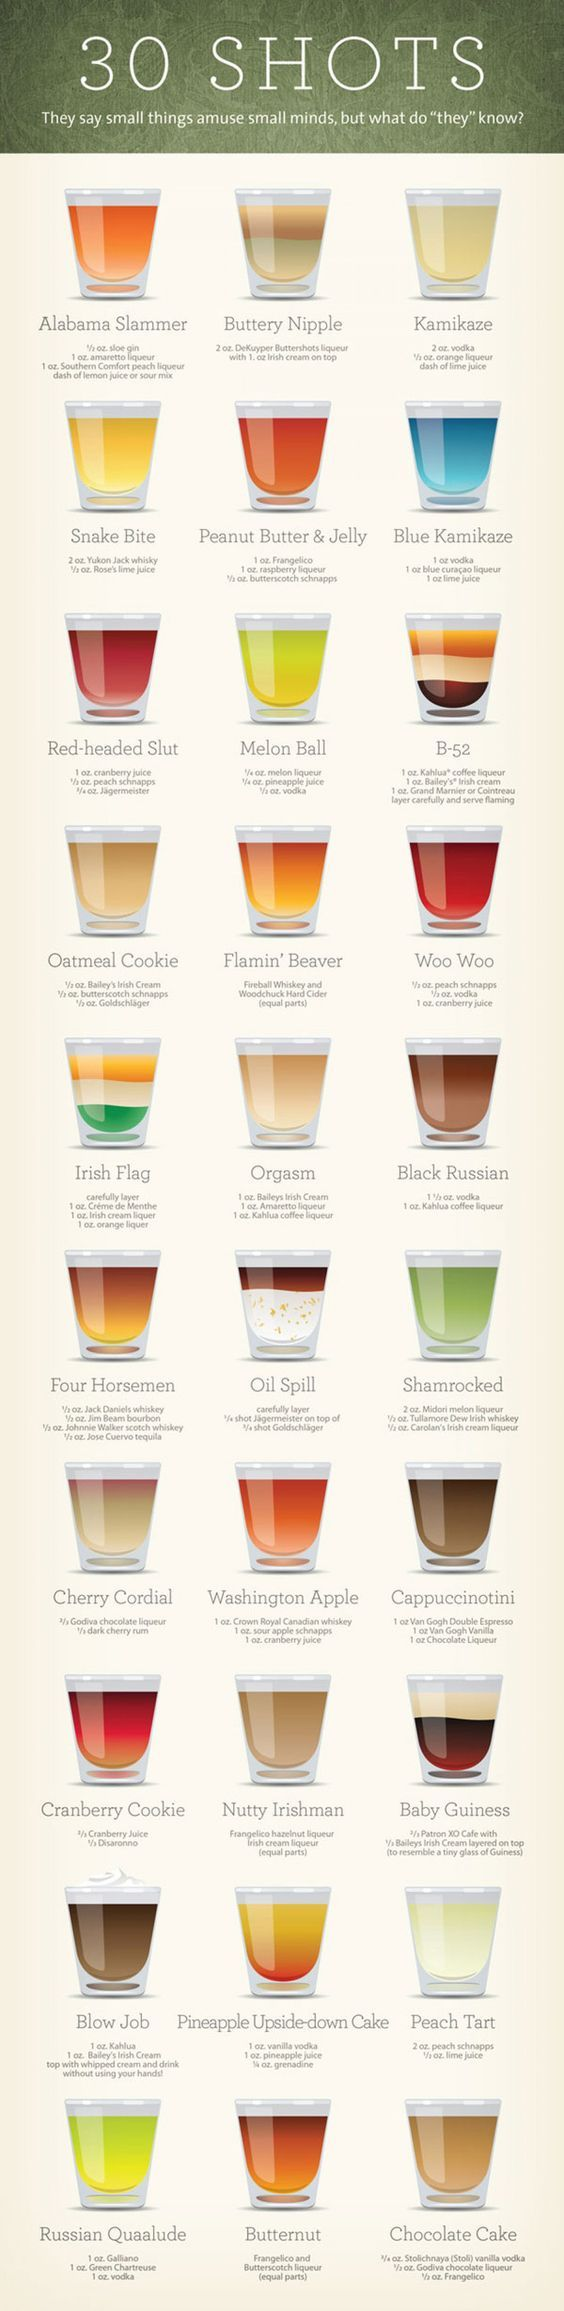 17 Diagrams To Help You Get Turnt Yummy Drinks Alcohol Recipes Alcohol